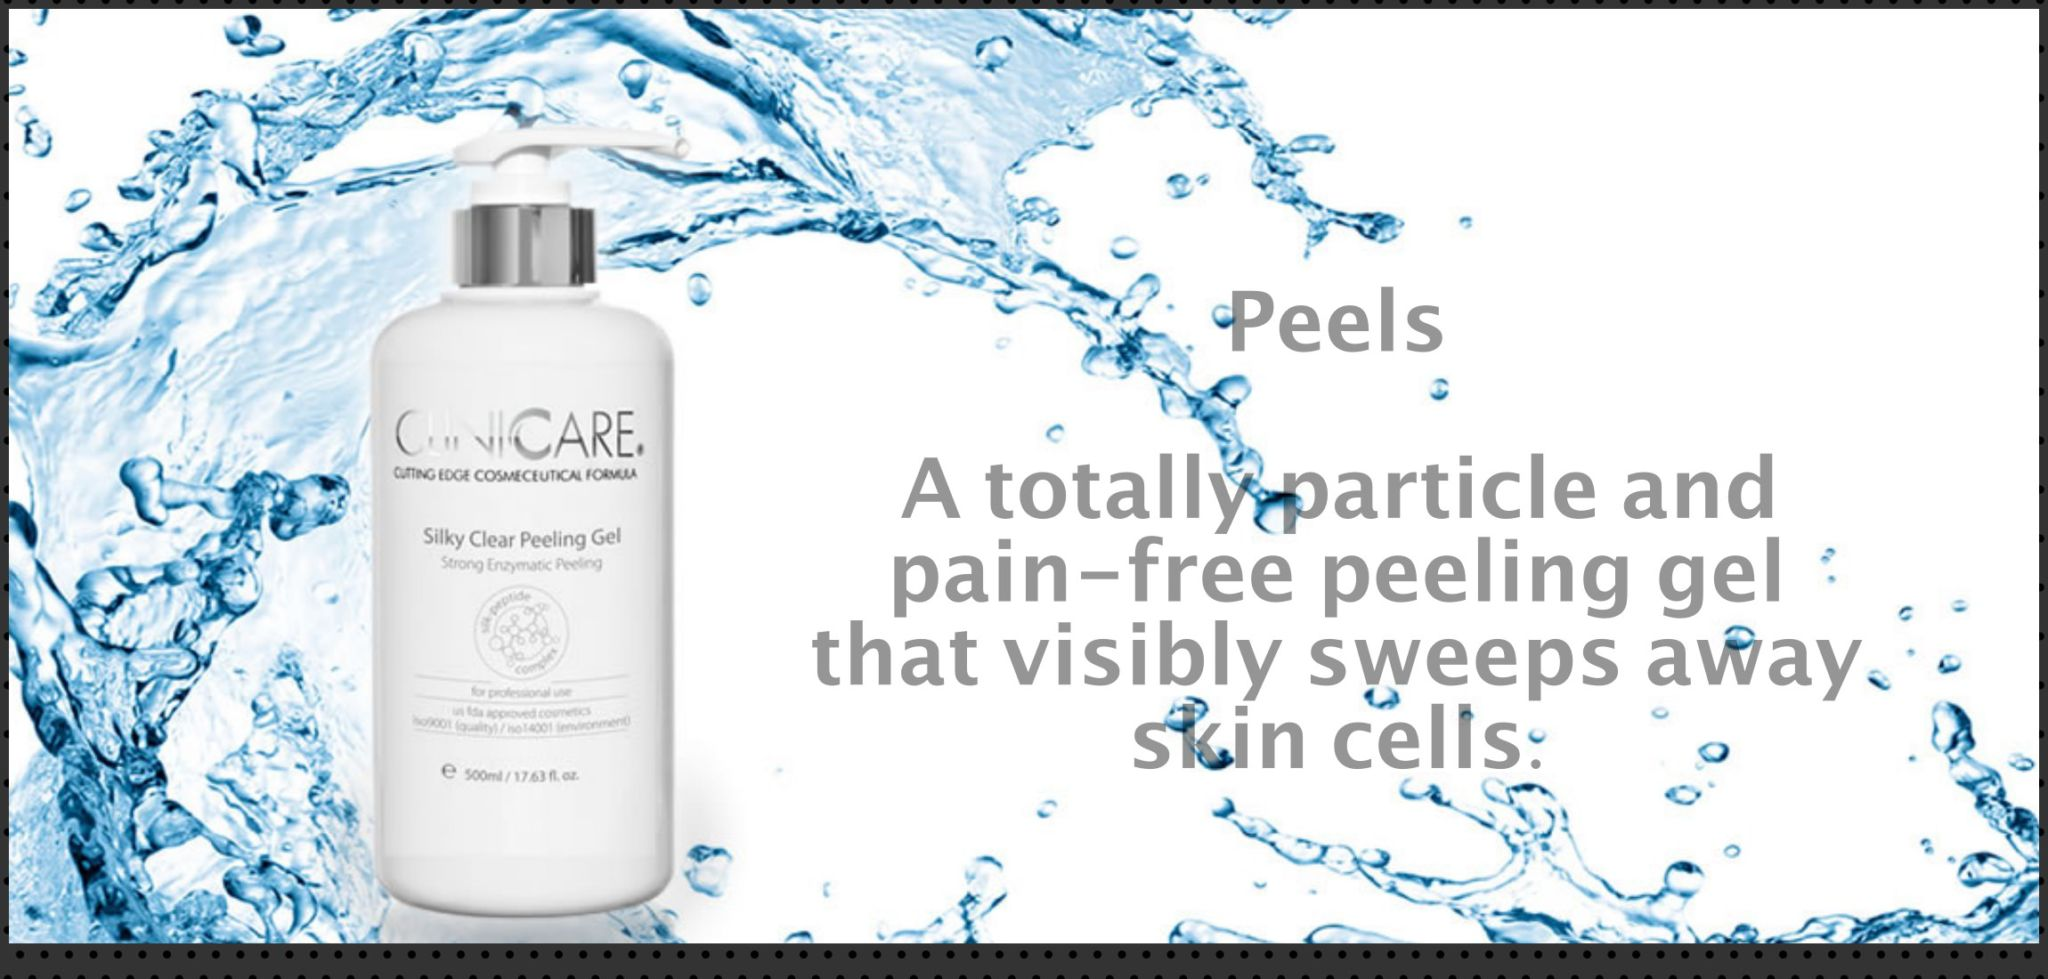 Clinicare Chemical Peel Treatments Beautiful World